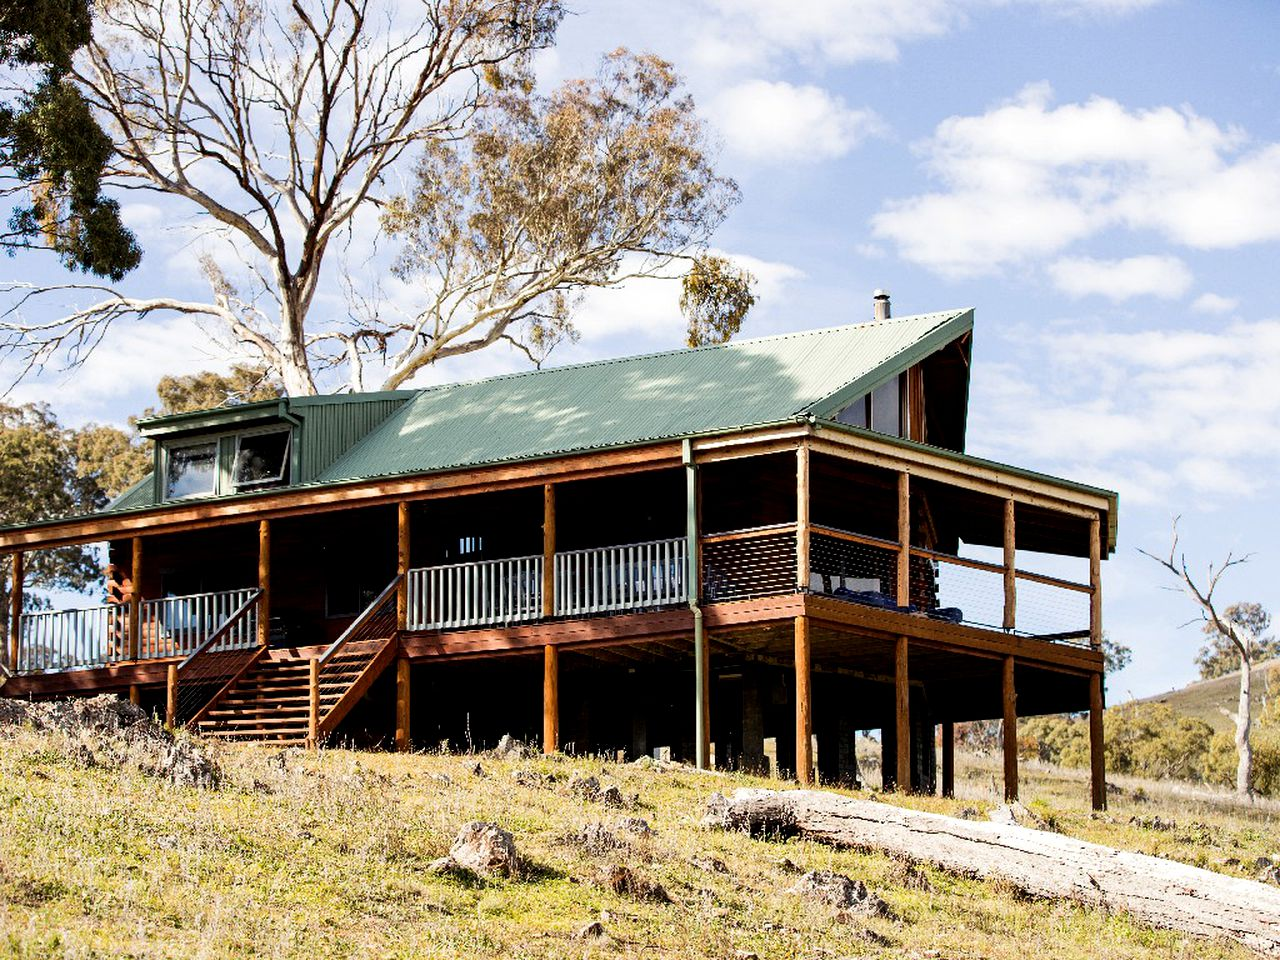 Cabins (Capertee, New South Wales, Australia)